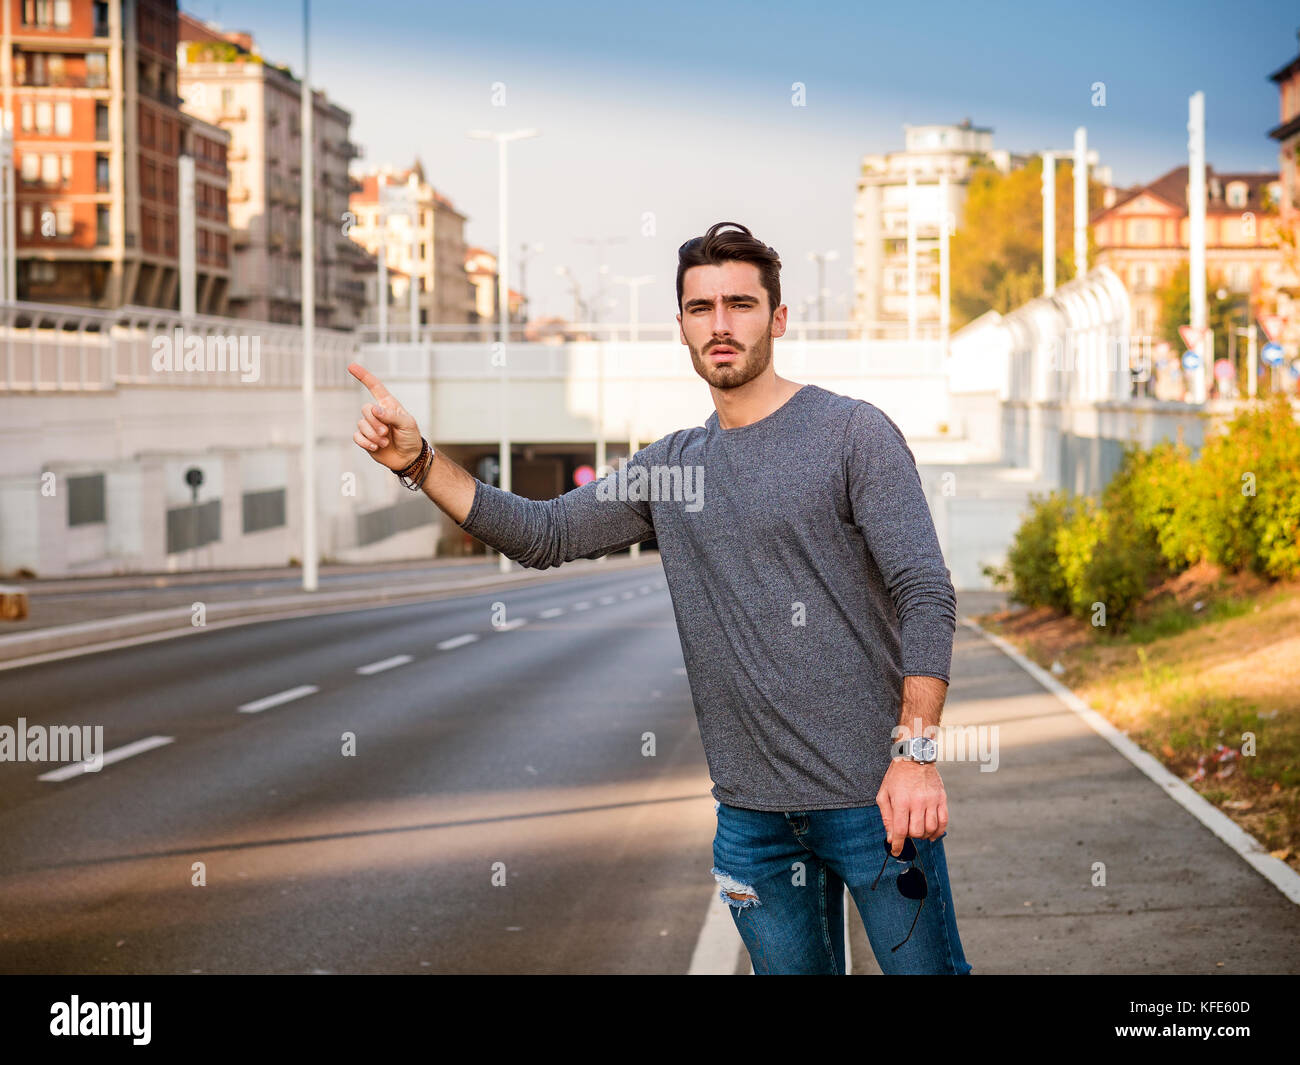 Young man stopping a taxi cab - Stock Image